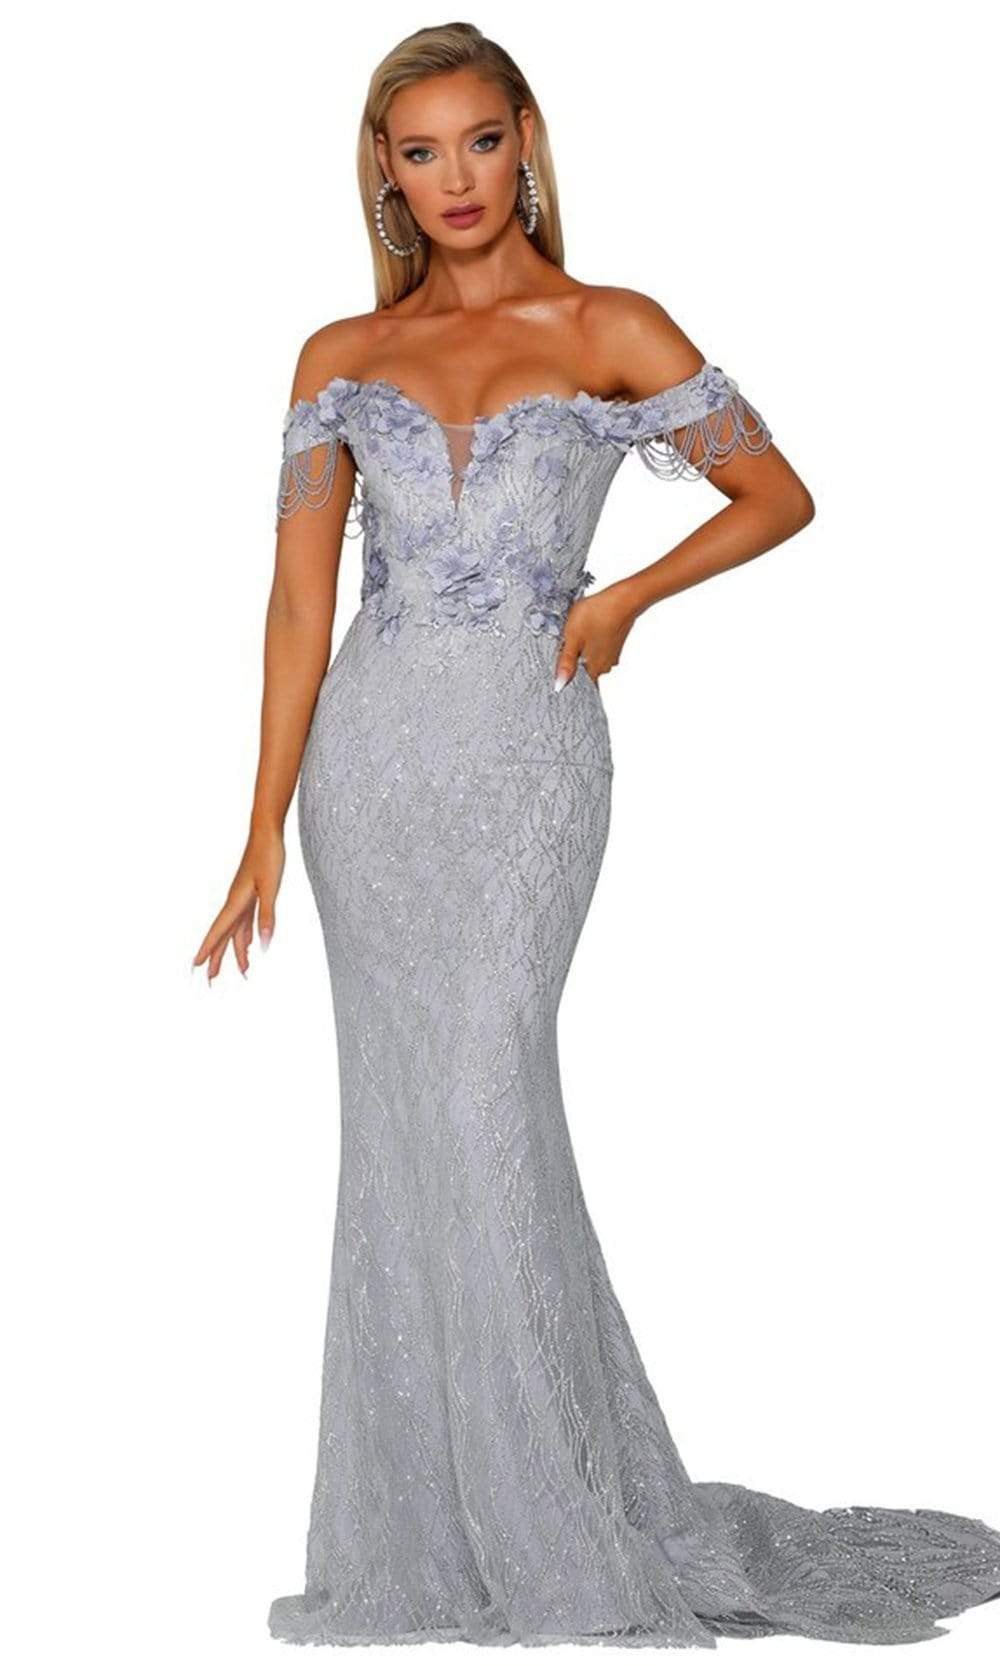 Portia and Scarlett - PS6001 Off Shoulder Glitter Mermaid Evening Gown from Portia and Scarlett